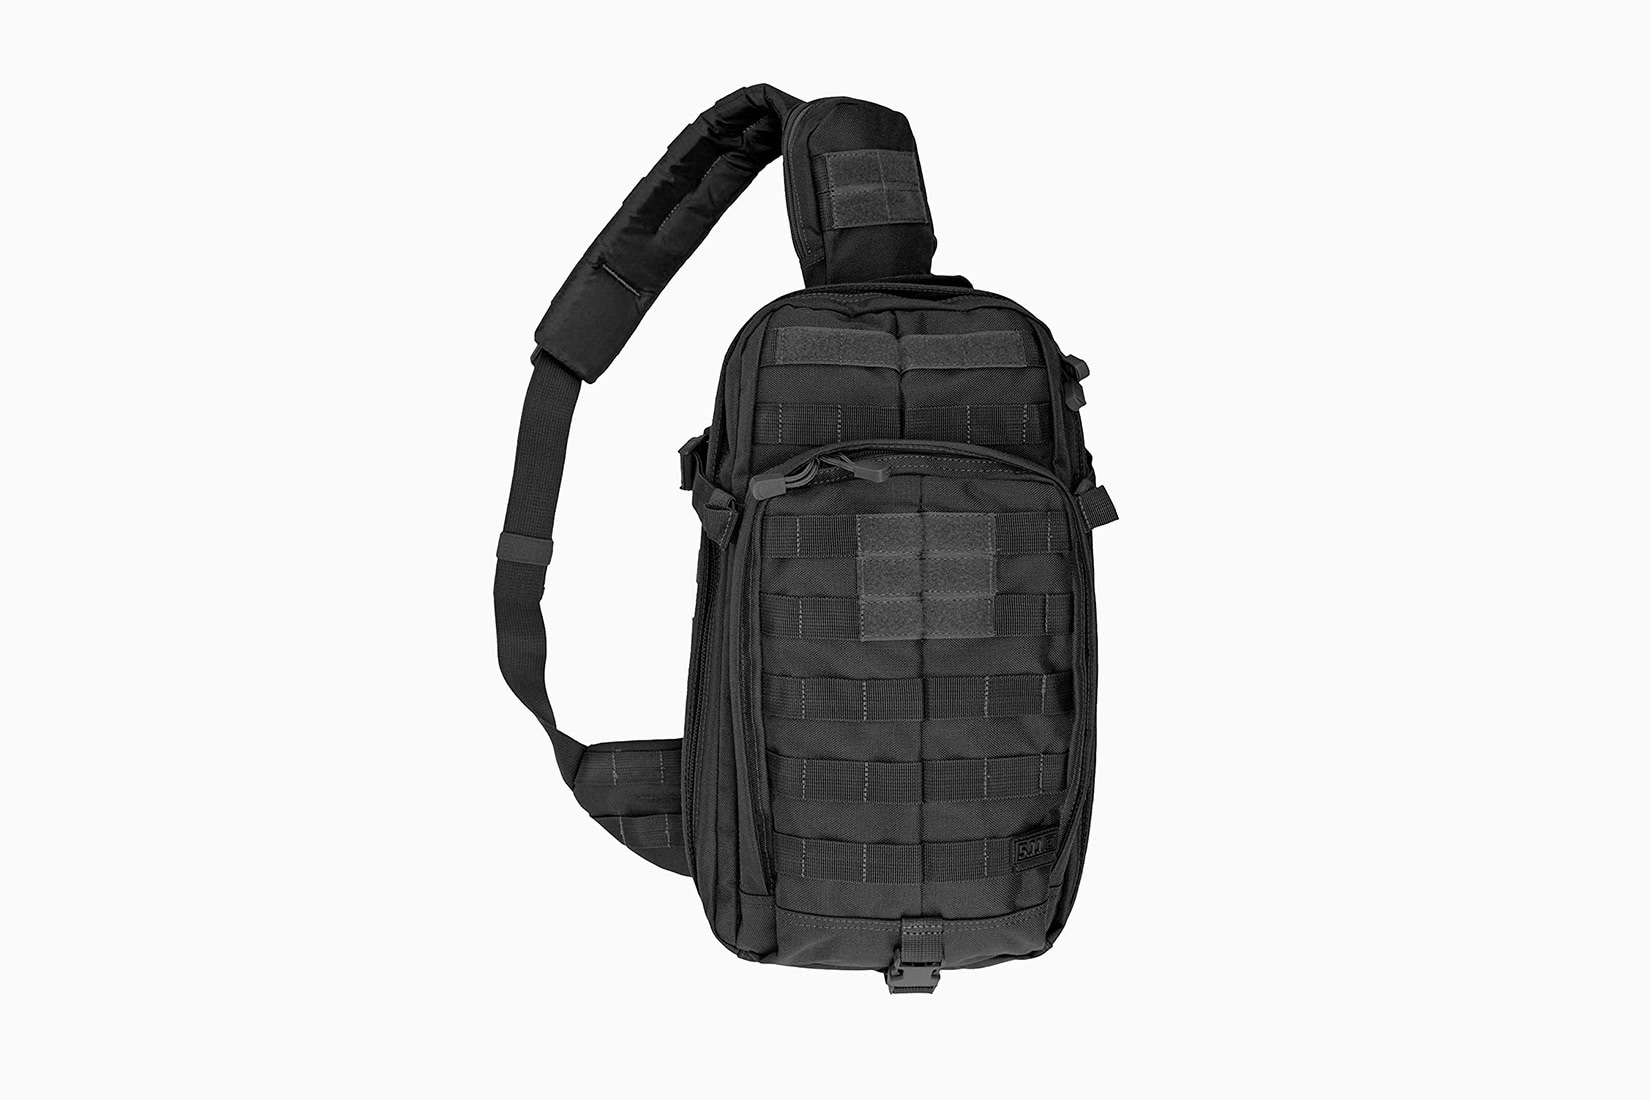 best sling bag 5.11 moab 10 tactical - Luxe Digital